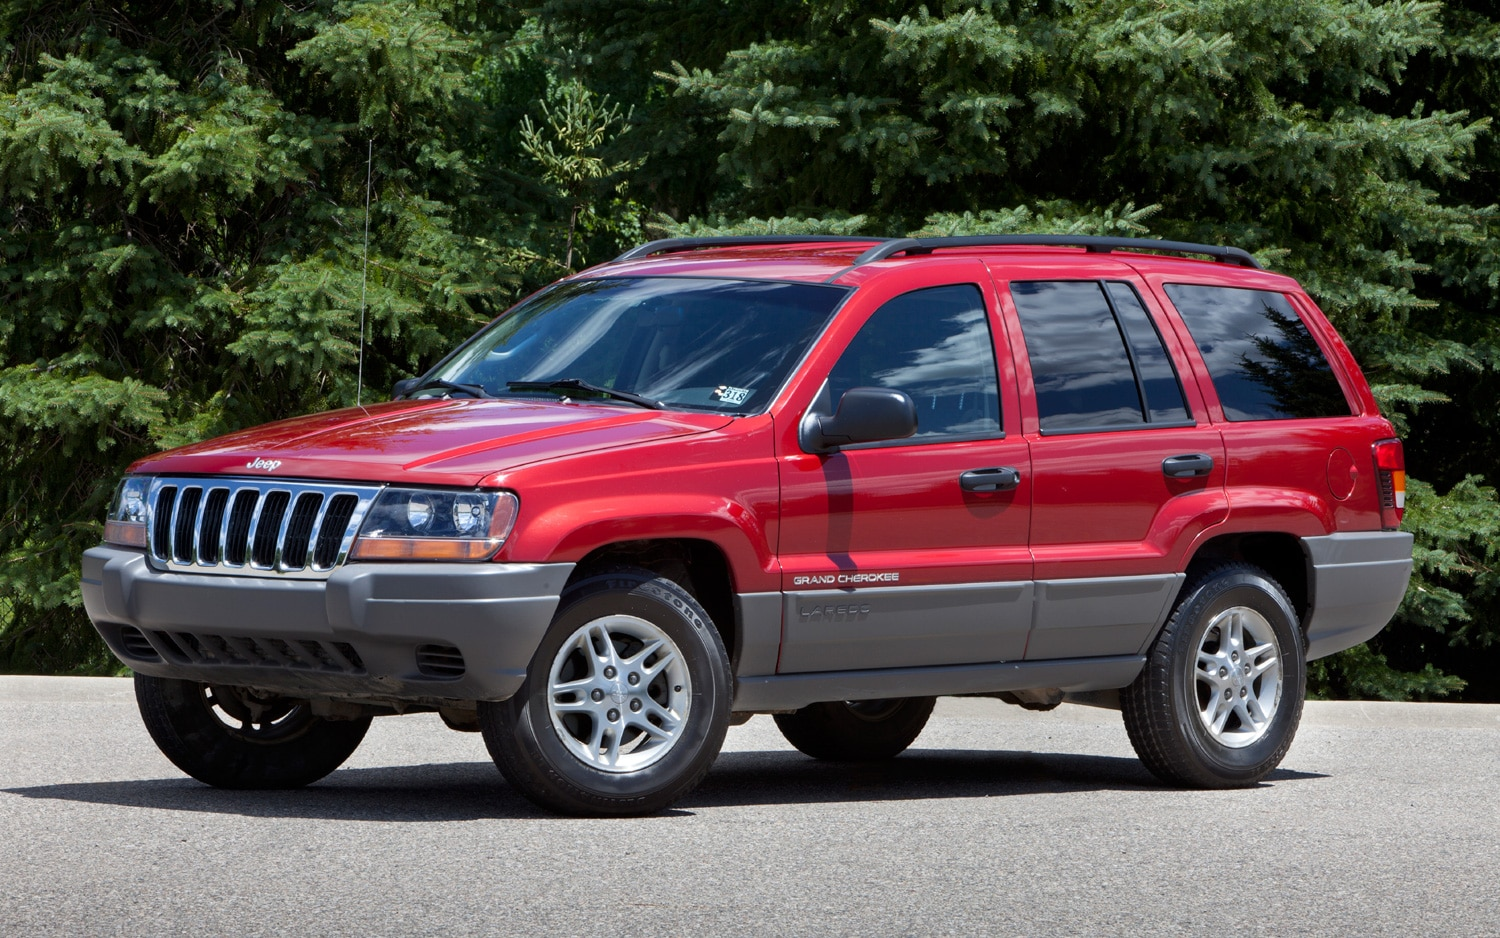 jeep grand cherokee fire investigation expanded to 5.1 million